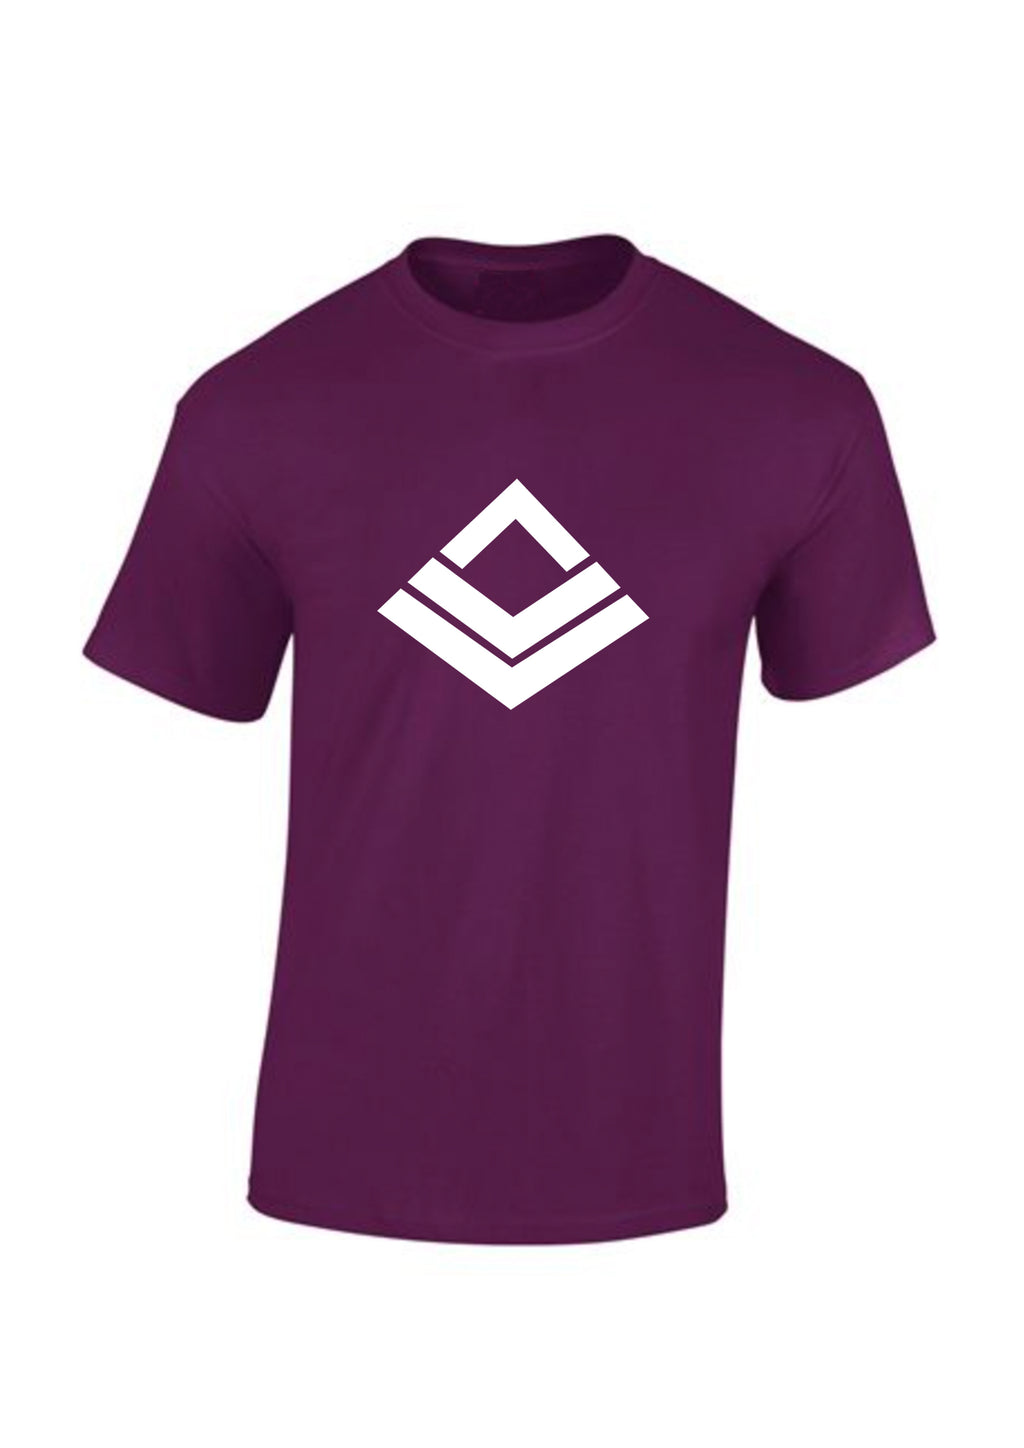 Swaggerlicious Classic London Purple T-Shirt - swaggerlicious-clothing.com